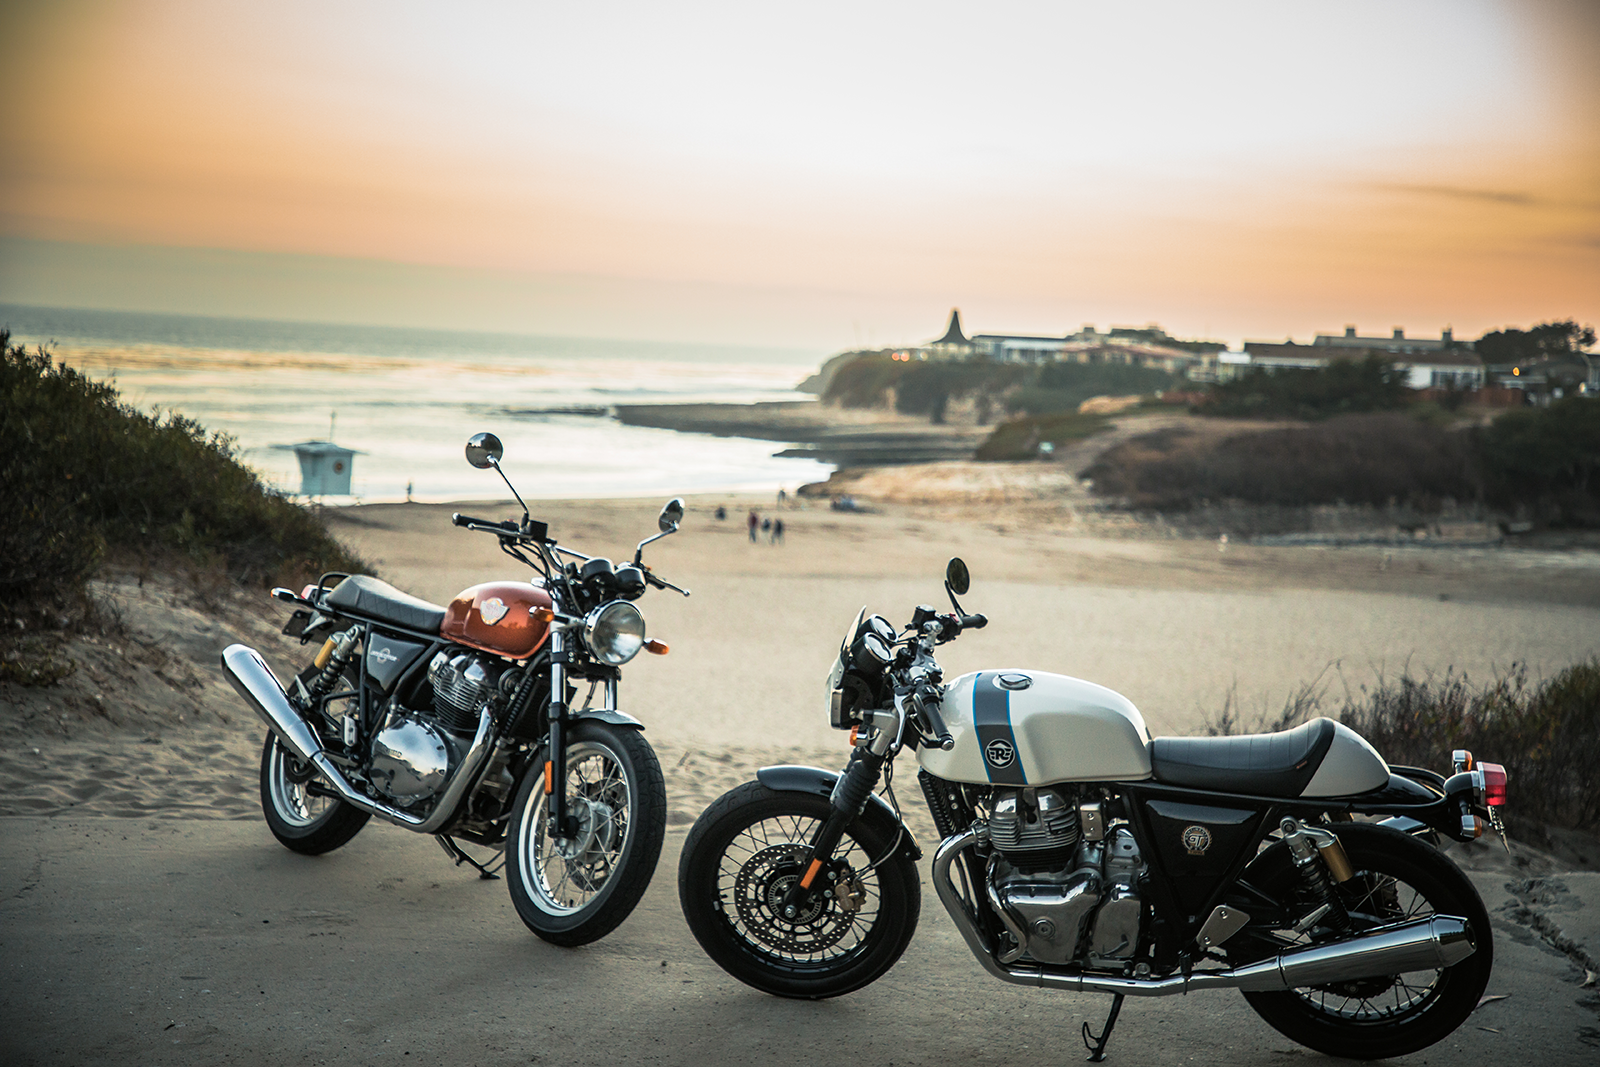 Royal Enfield Motorcycles at Beach for Sunset